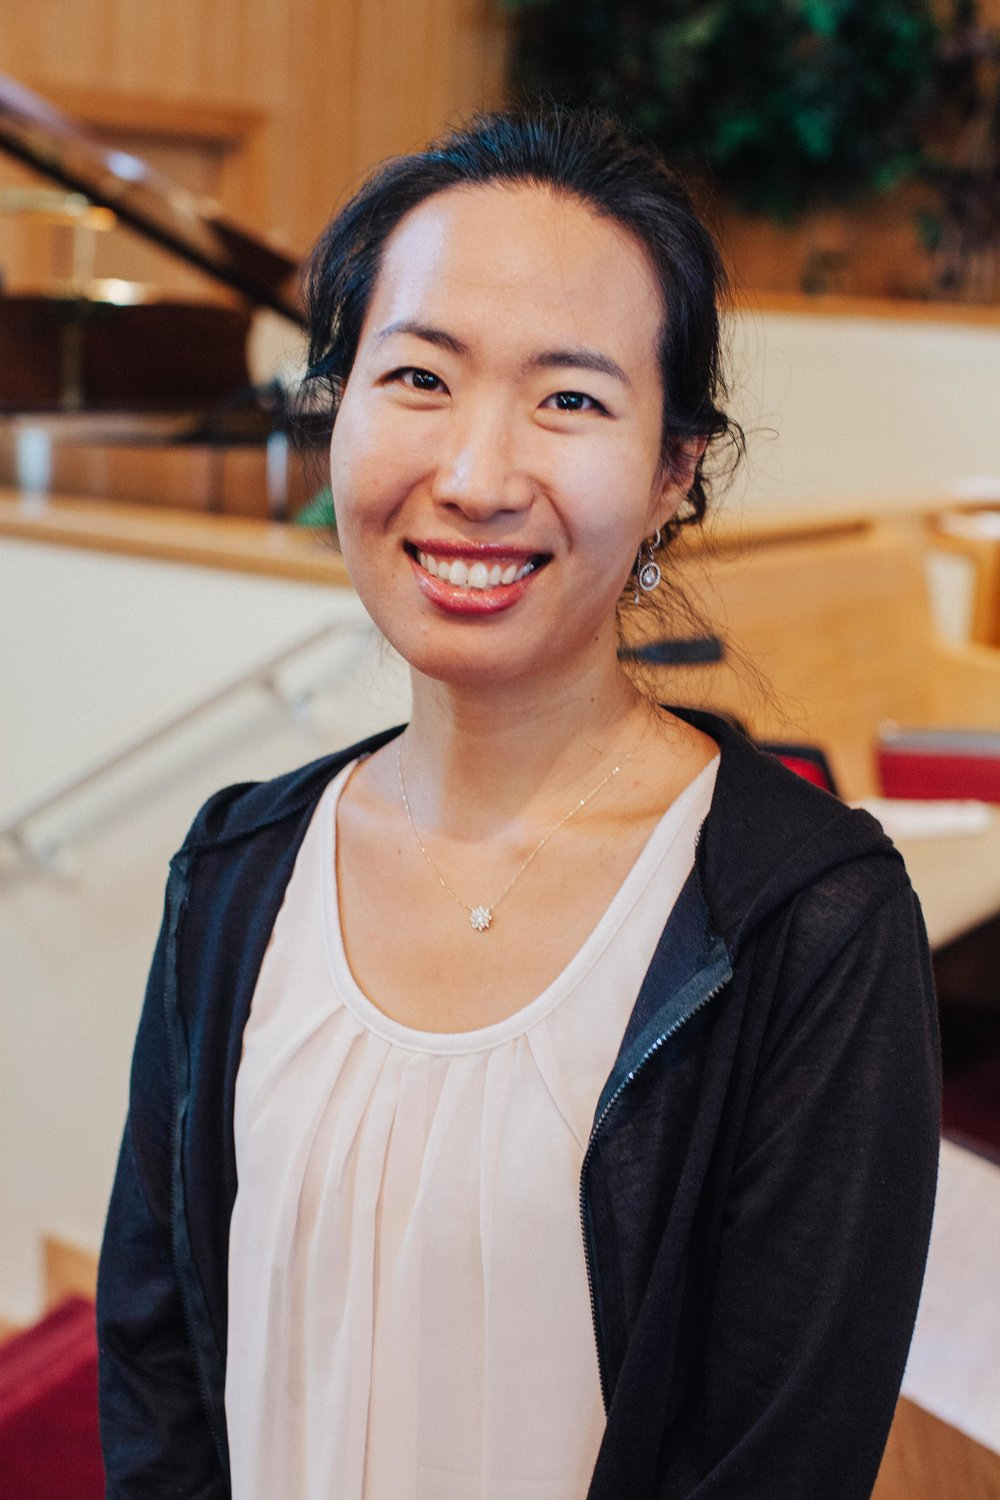 Multicultural Minister/Music AssistantSylvia Kim, DMA -